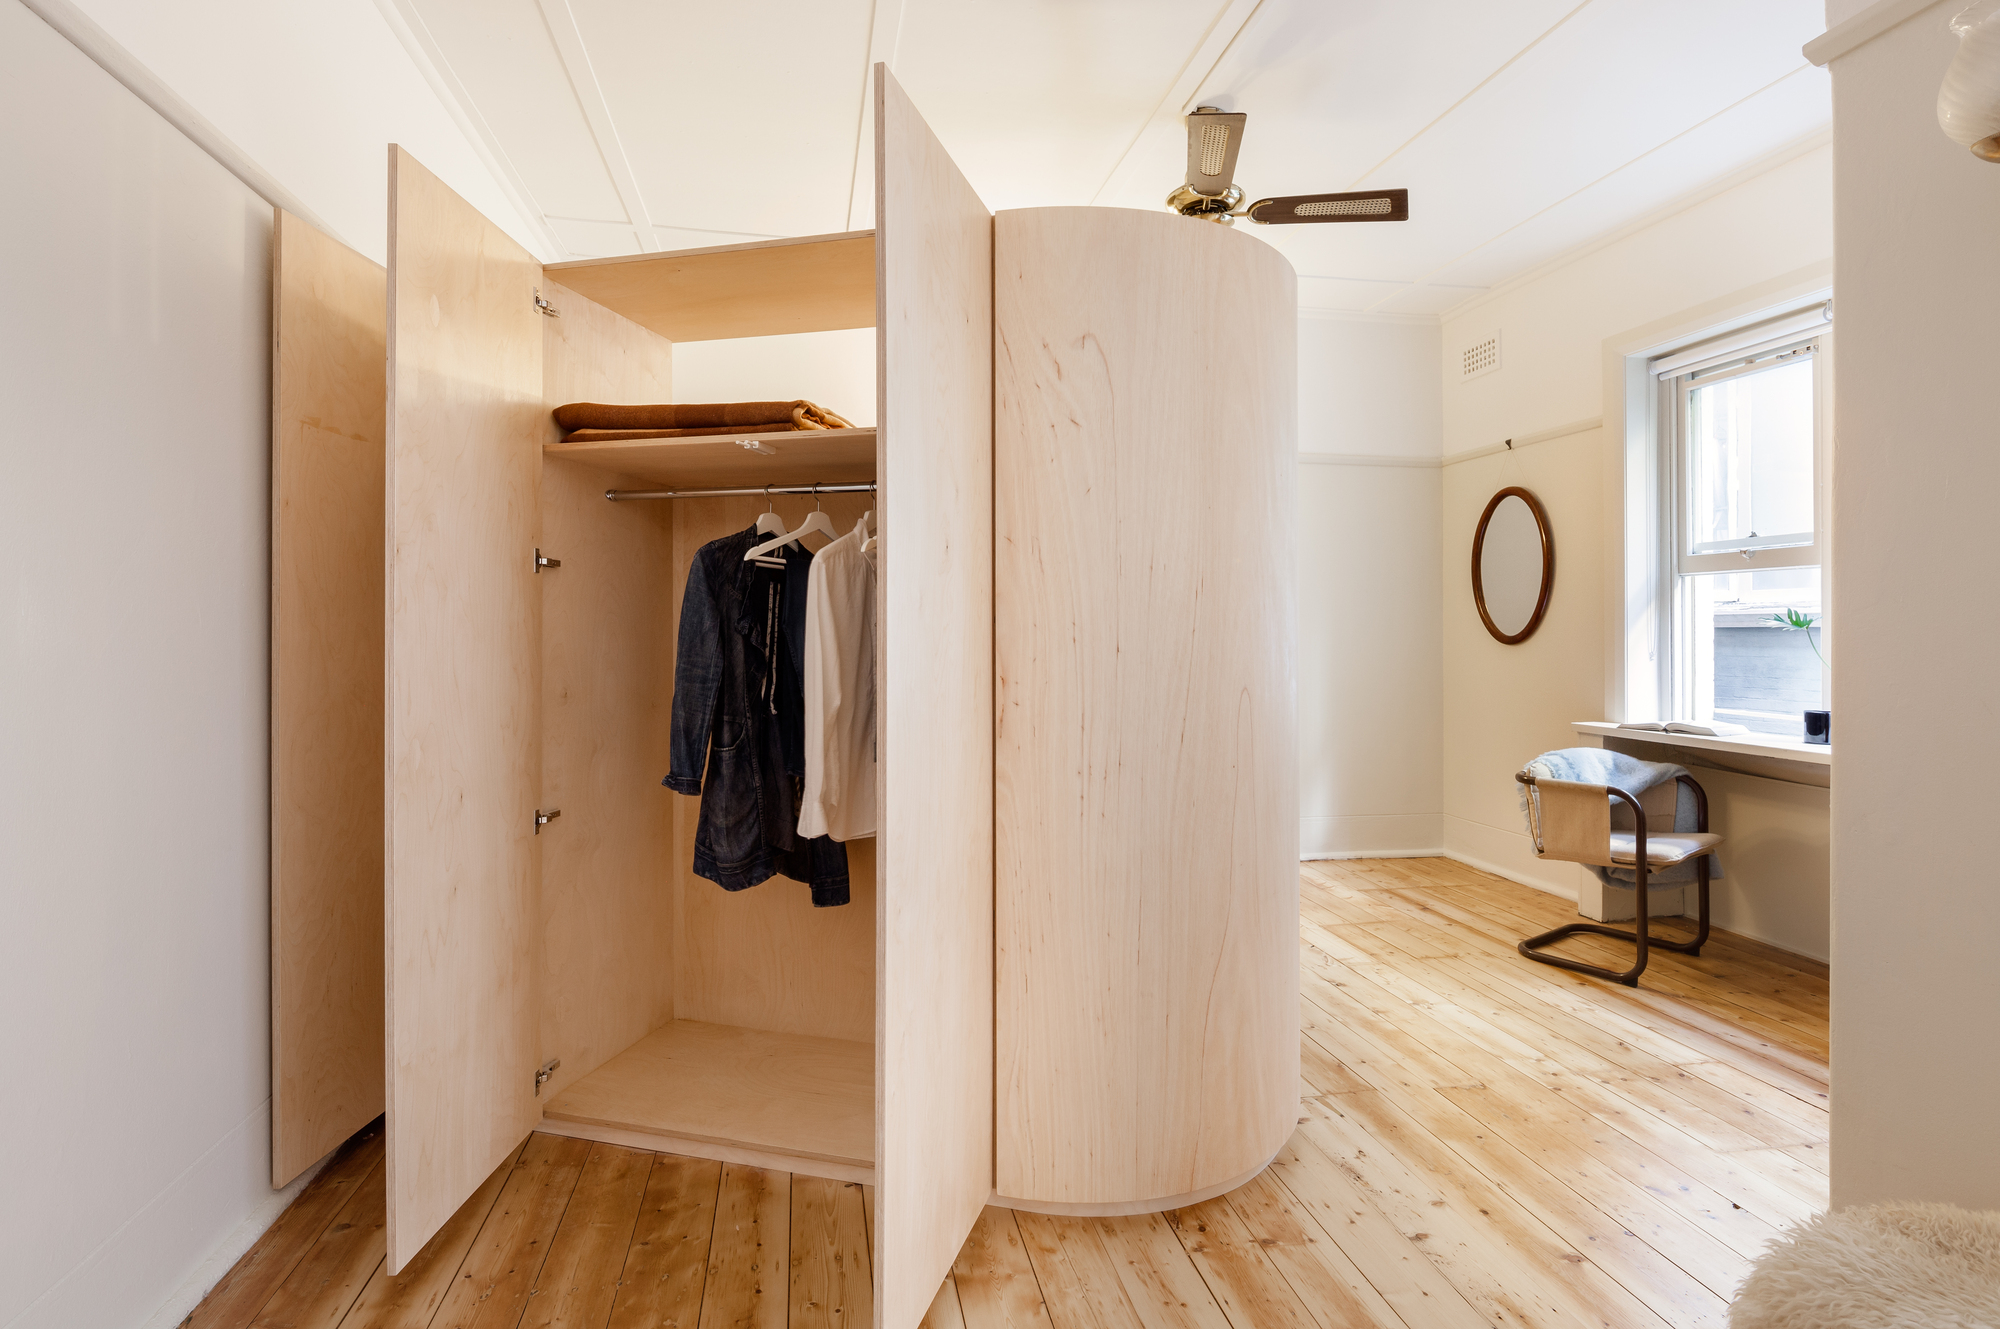 Small and Sculpted Studio Apartment / Catseye Bay Design | ArchDaily